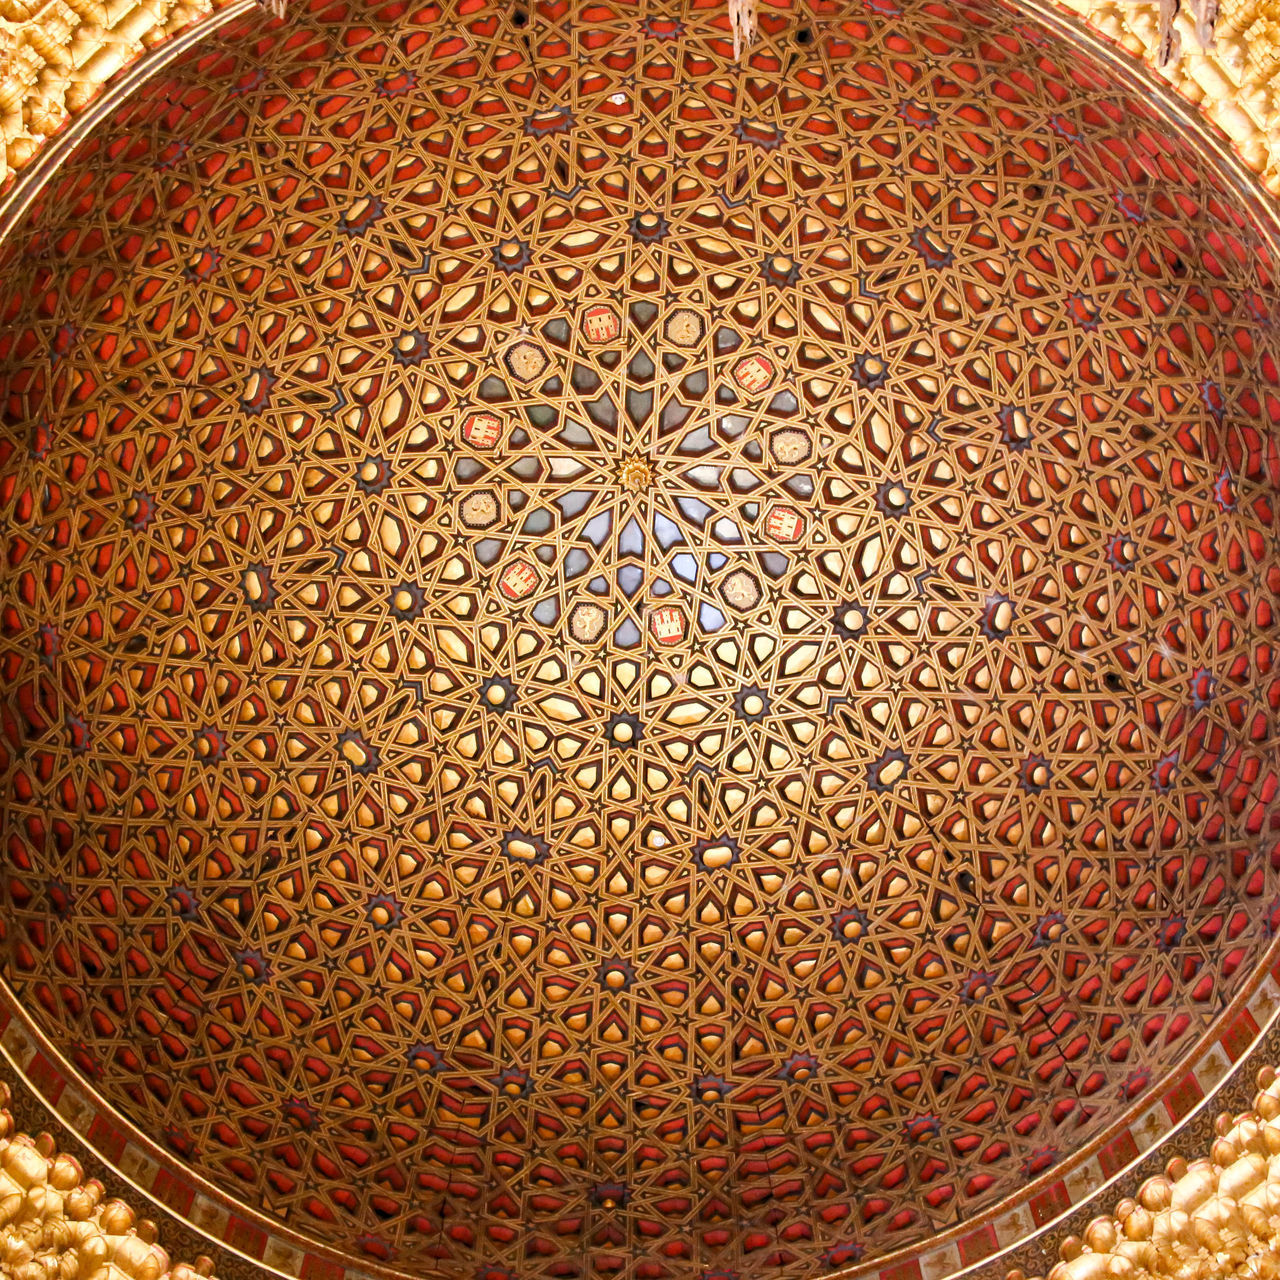 Alcazar Architecture Close-up Day Historical Building Indoors  Interior Decorating No People Pattern Textured